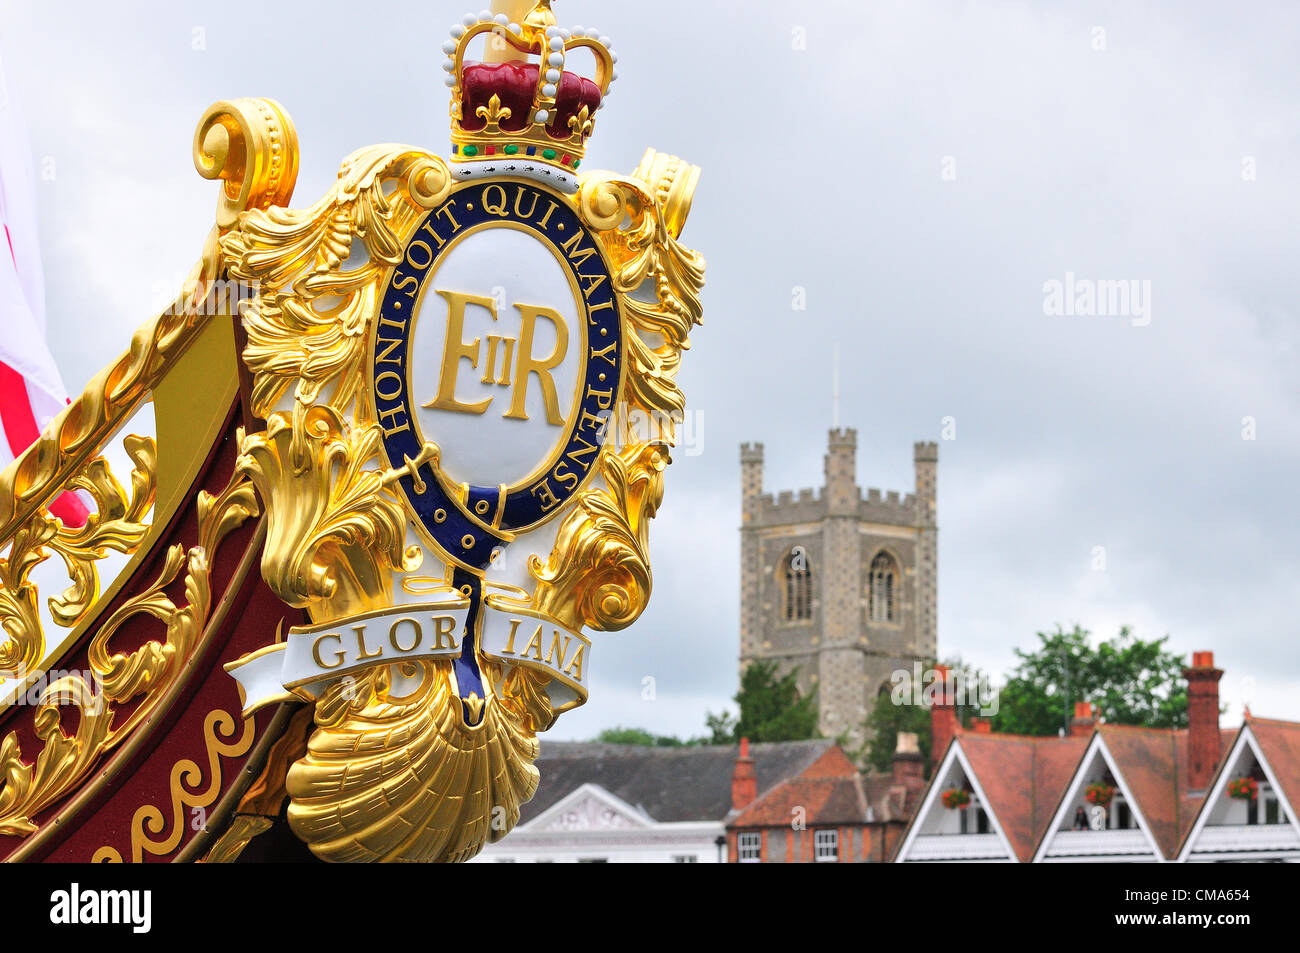 the royal barge Gloriana, moored at Henley on Thames during the Henley Royal Regatta 2012/  iOver 170 of Great Britain's - Stock Image